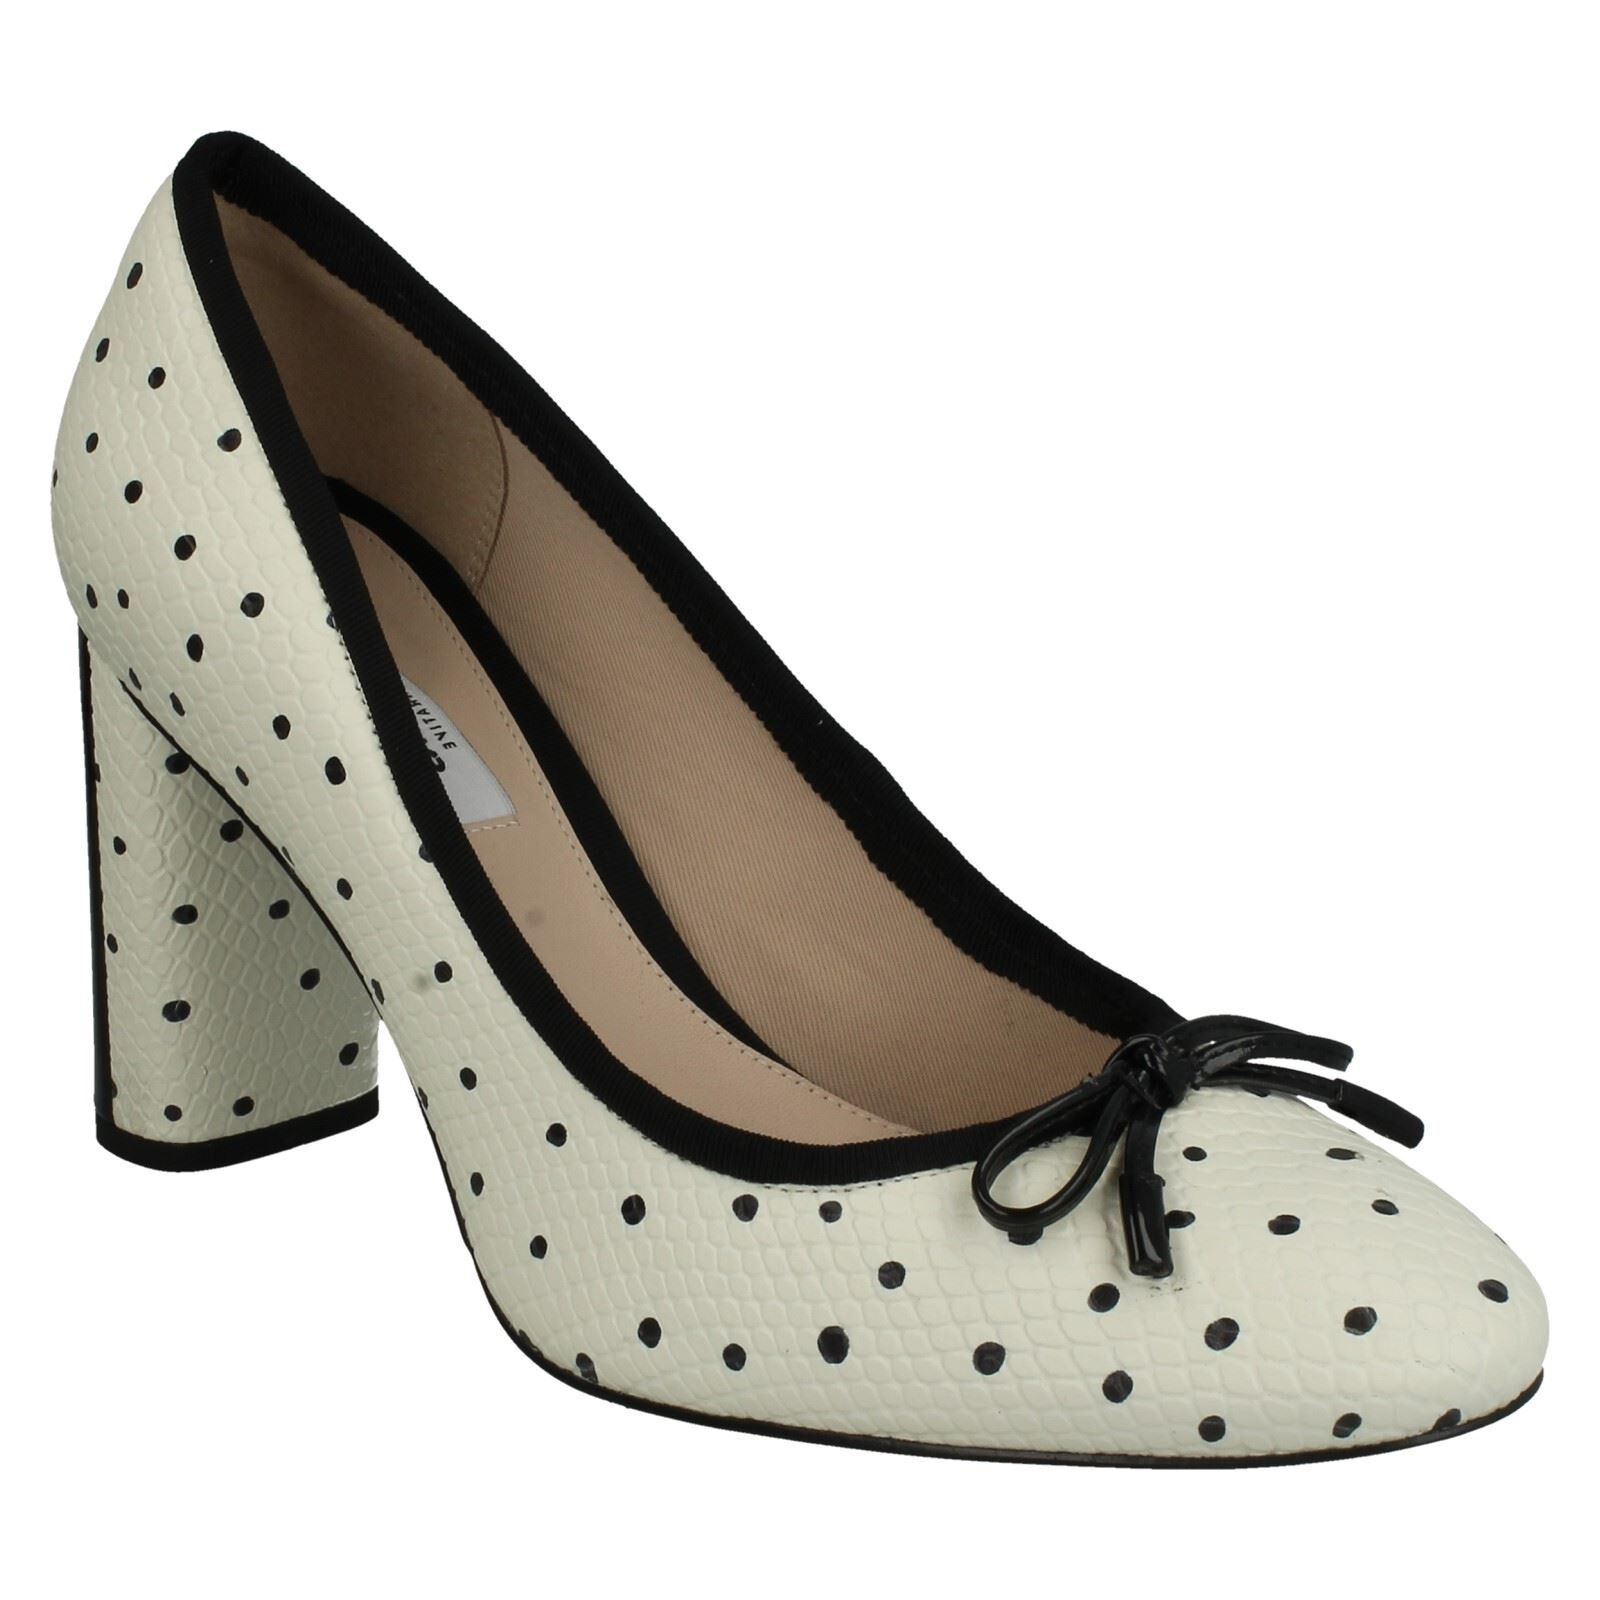 IDAMARIE FAYE FORMAL LADIES CLARKS SLIP ON FORMAL FAYE POLKA DOT LEATHER HEELED COURT SHOES d14a55